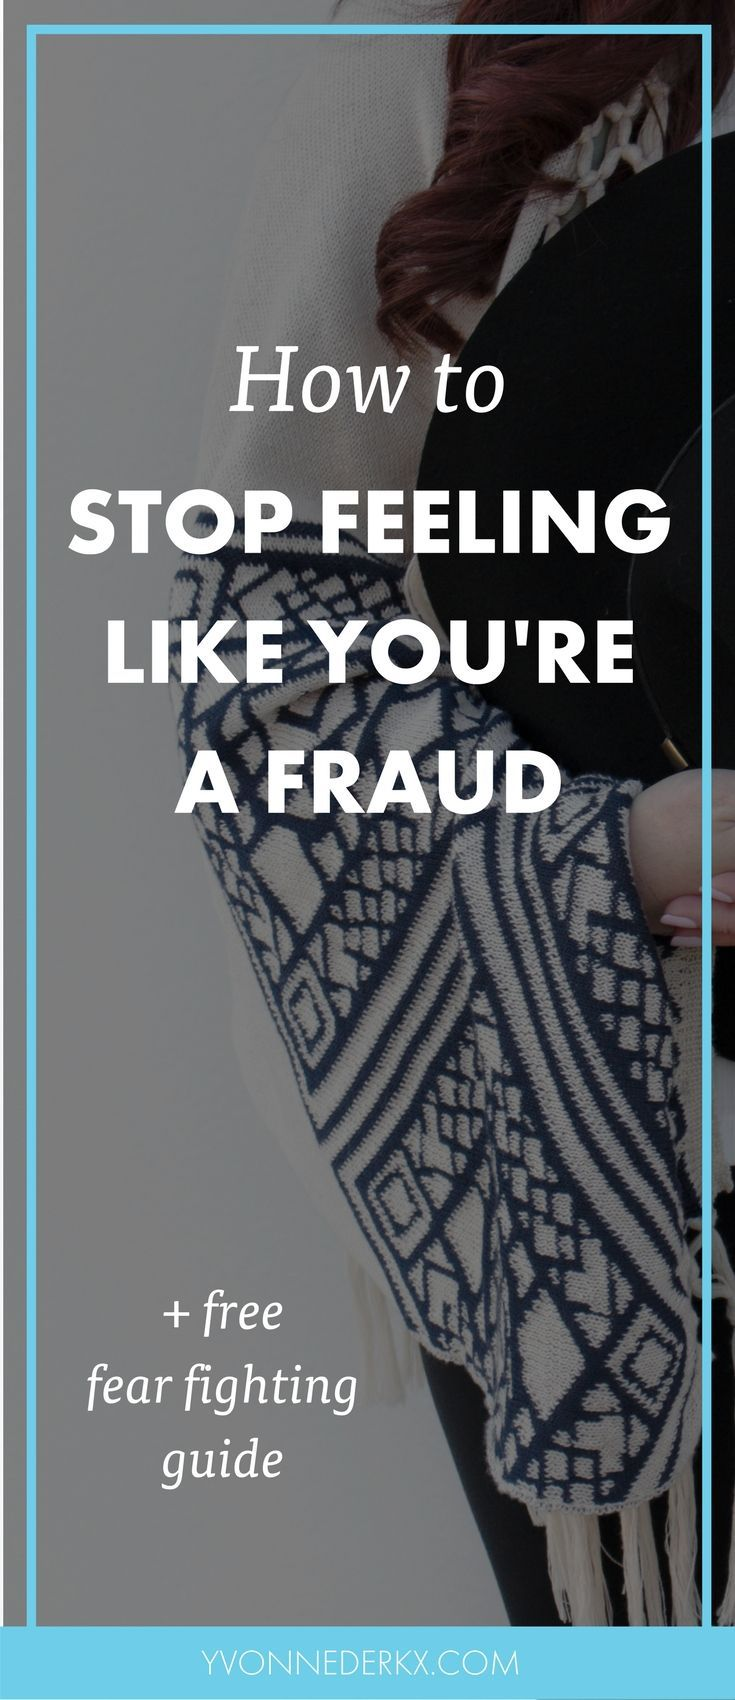 Just starting out and feel intimidated, simply because everyone else seems to be so far ahead of you? Here are 4 easy steps to no longer feel like you're a fraud.